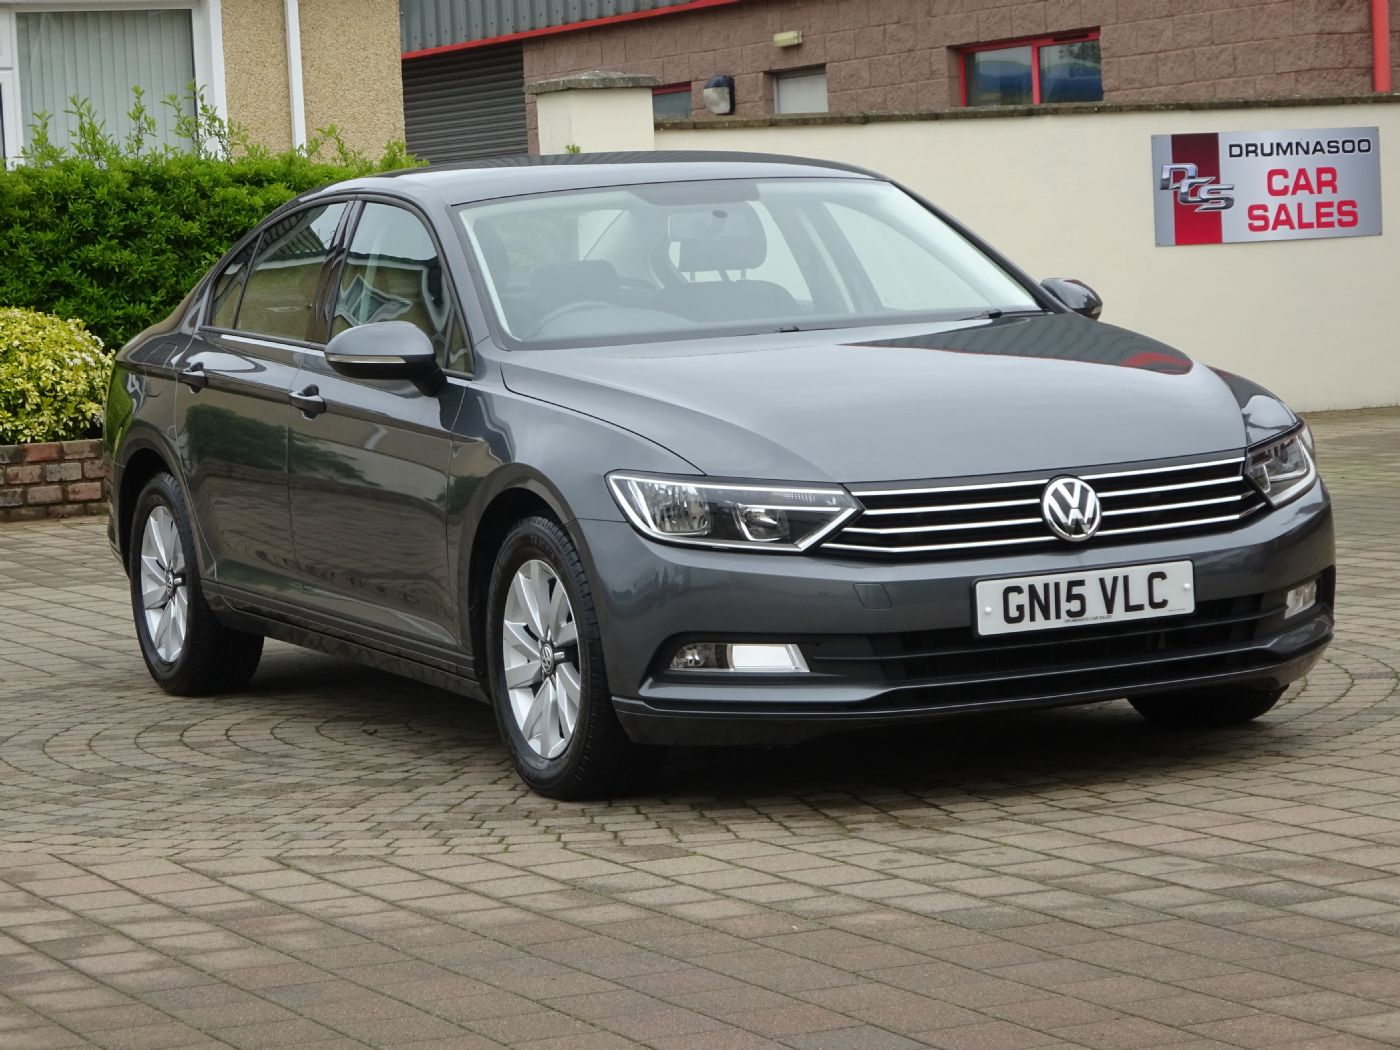 Volkswagen Passat S 1.6 TDI Bluemotion Tech, £20 Road tax